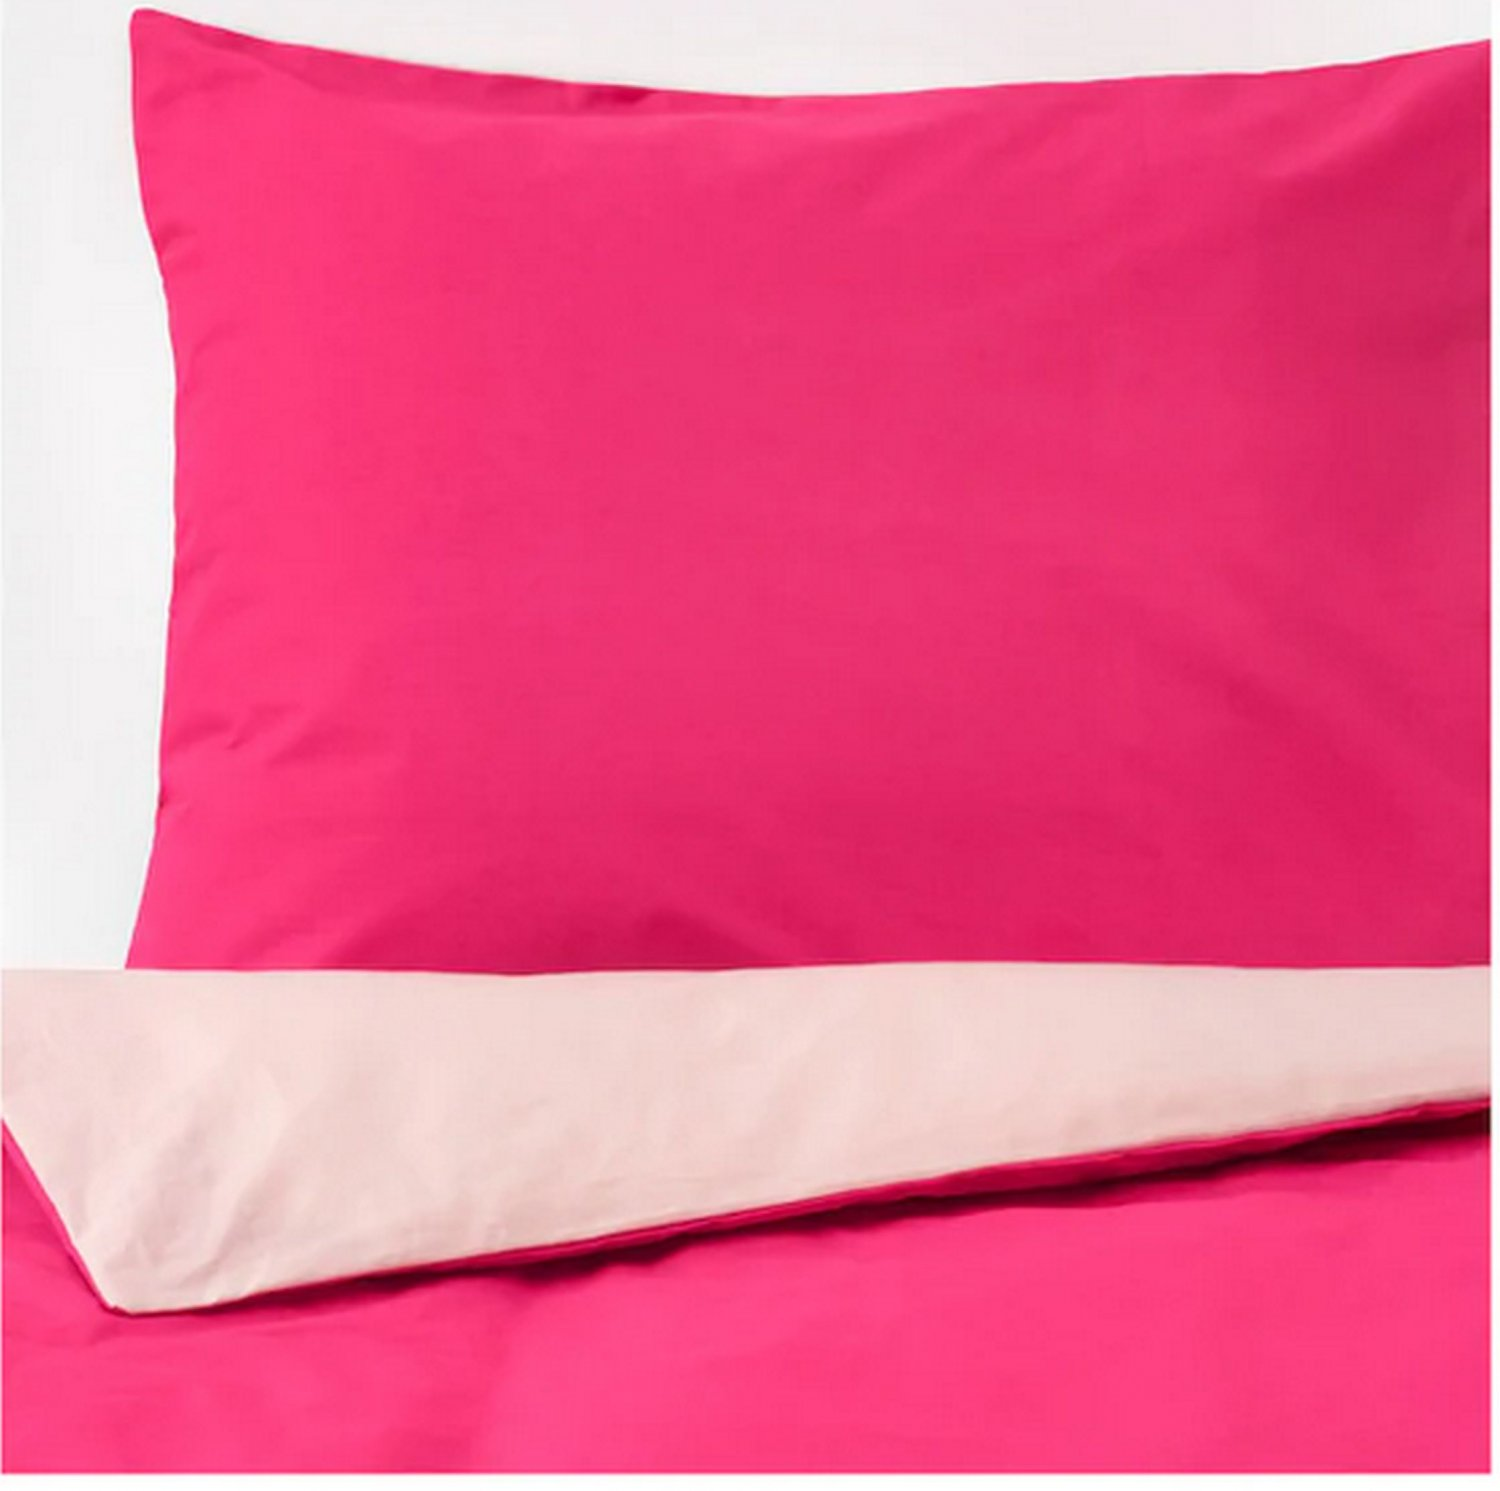 IKEA Dvala TWIN Single Duvet COVER Pillowcase Set PINK Solid Two Tone